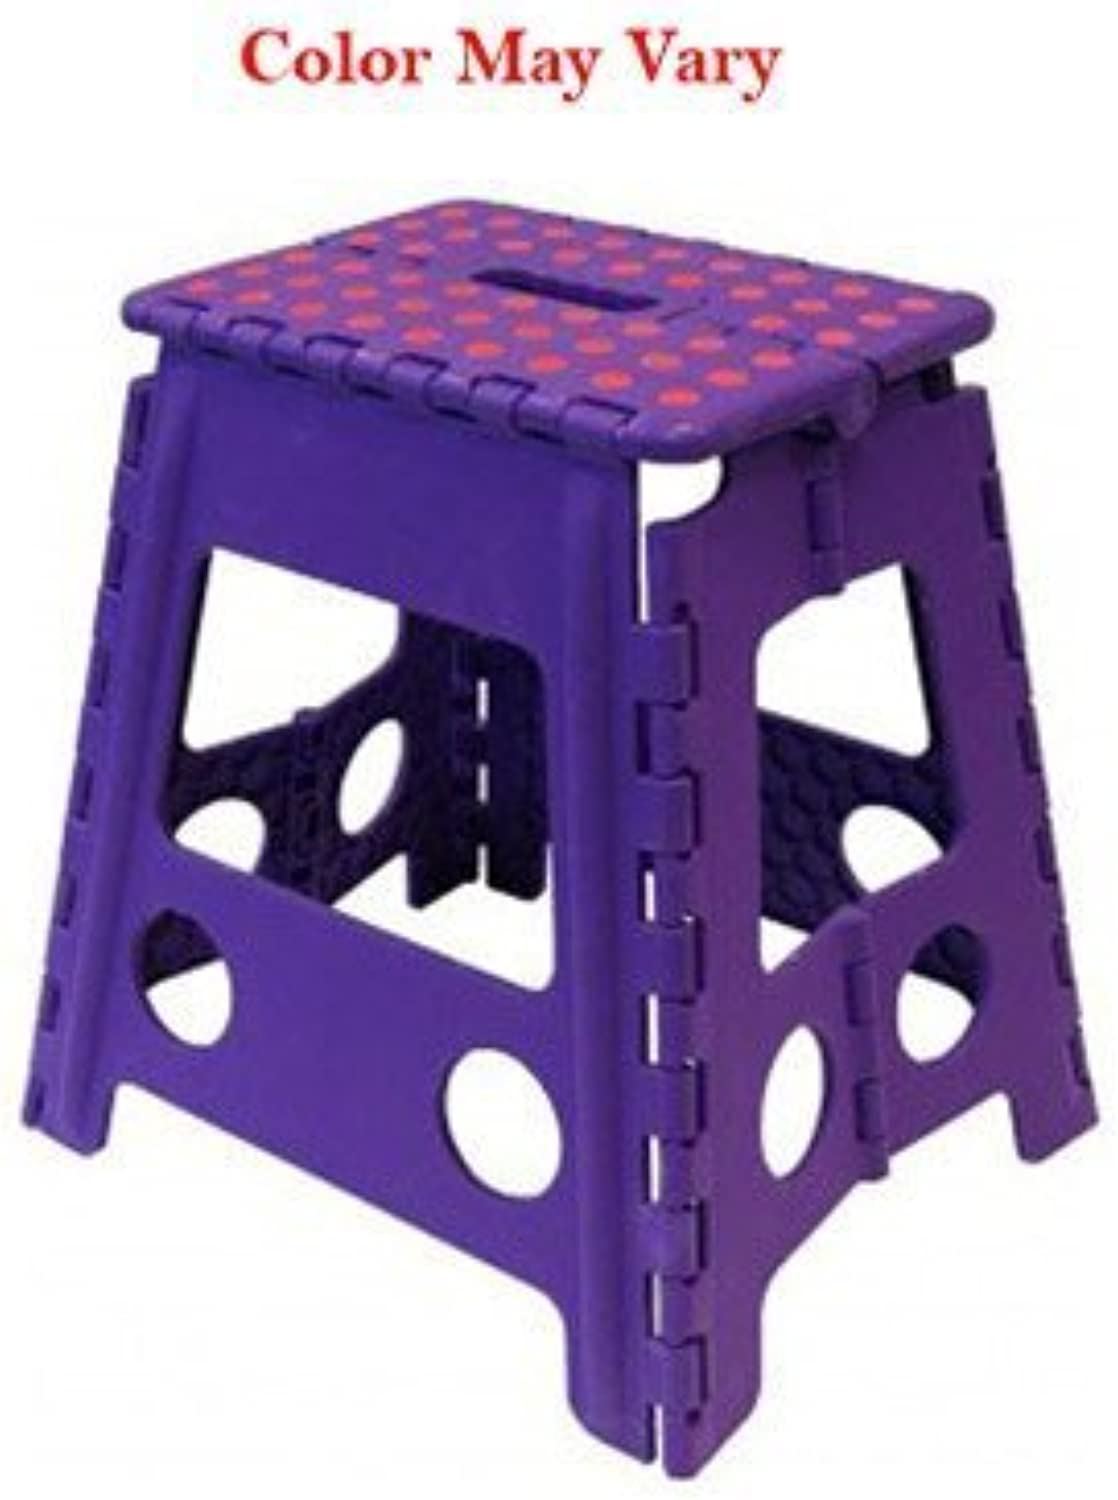 Wham Tall Folding Step Stool(pack of 2) - 201417 x 2 - color may vary by Wham